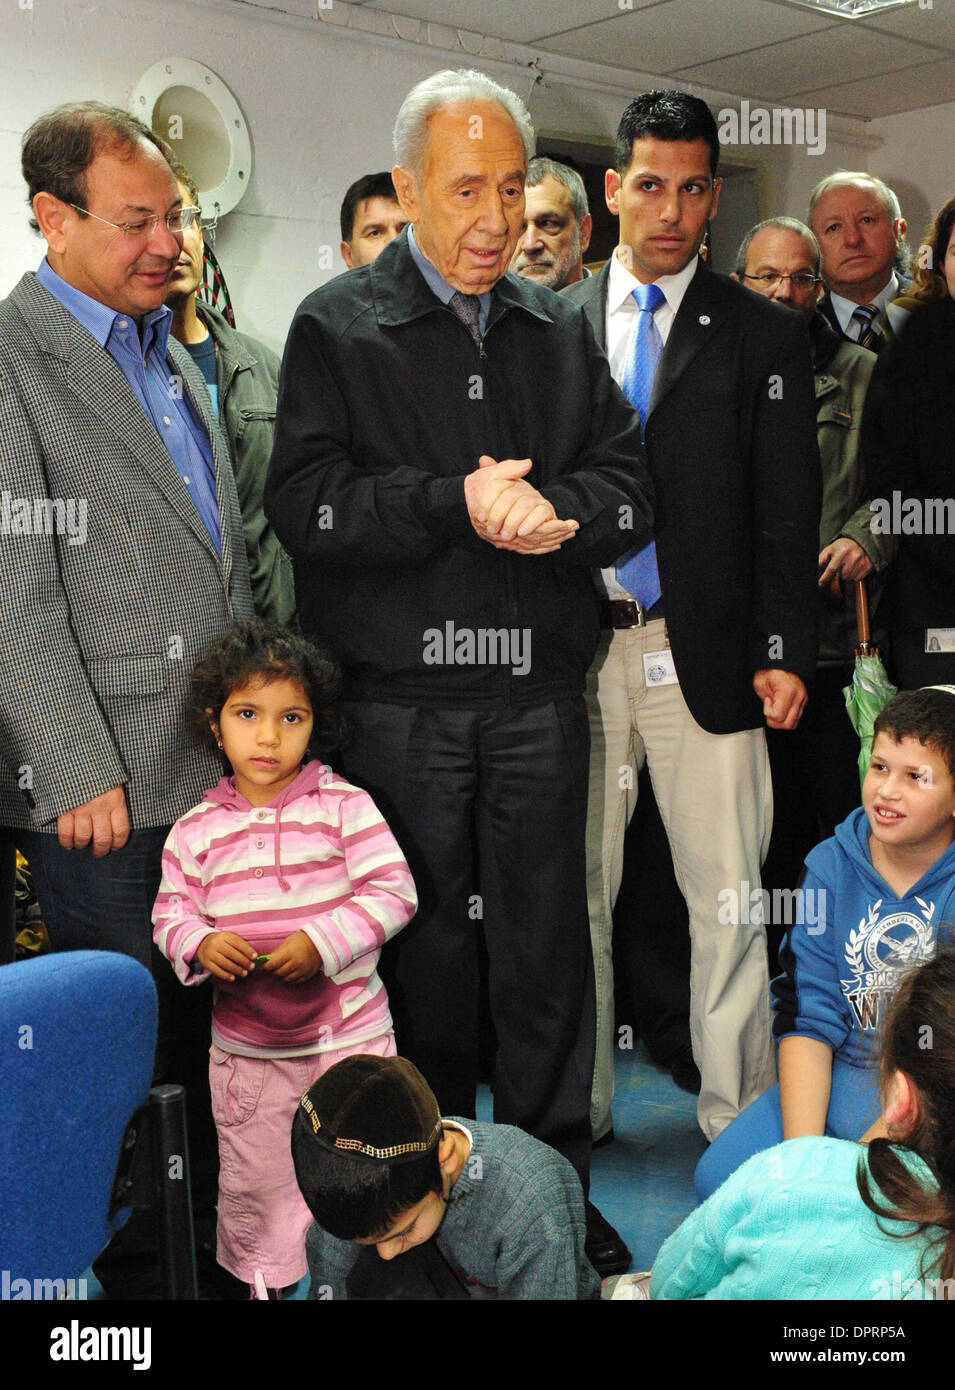 Dec 30, 2008 - Ashkelon, Israel - President SHIMON PERES is visiting children hiding in a bomb shelter from rocket attacks in Ashkelon on Wednesday December 31, 2008. Peres arrived this morning in Ashkelon in order to demonstrate solidarity with the residents of the city. President Peres visited children seeking refuge in a municipal bomb shelter, visited victims of Qassam and Grad - Stock Image